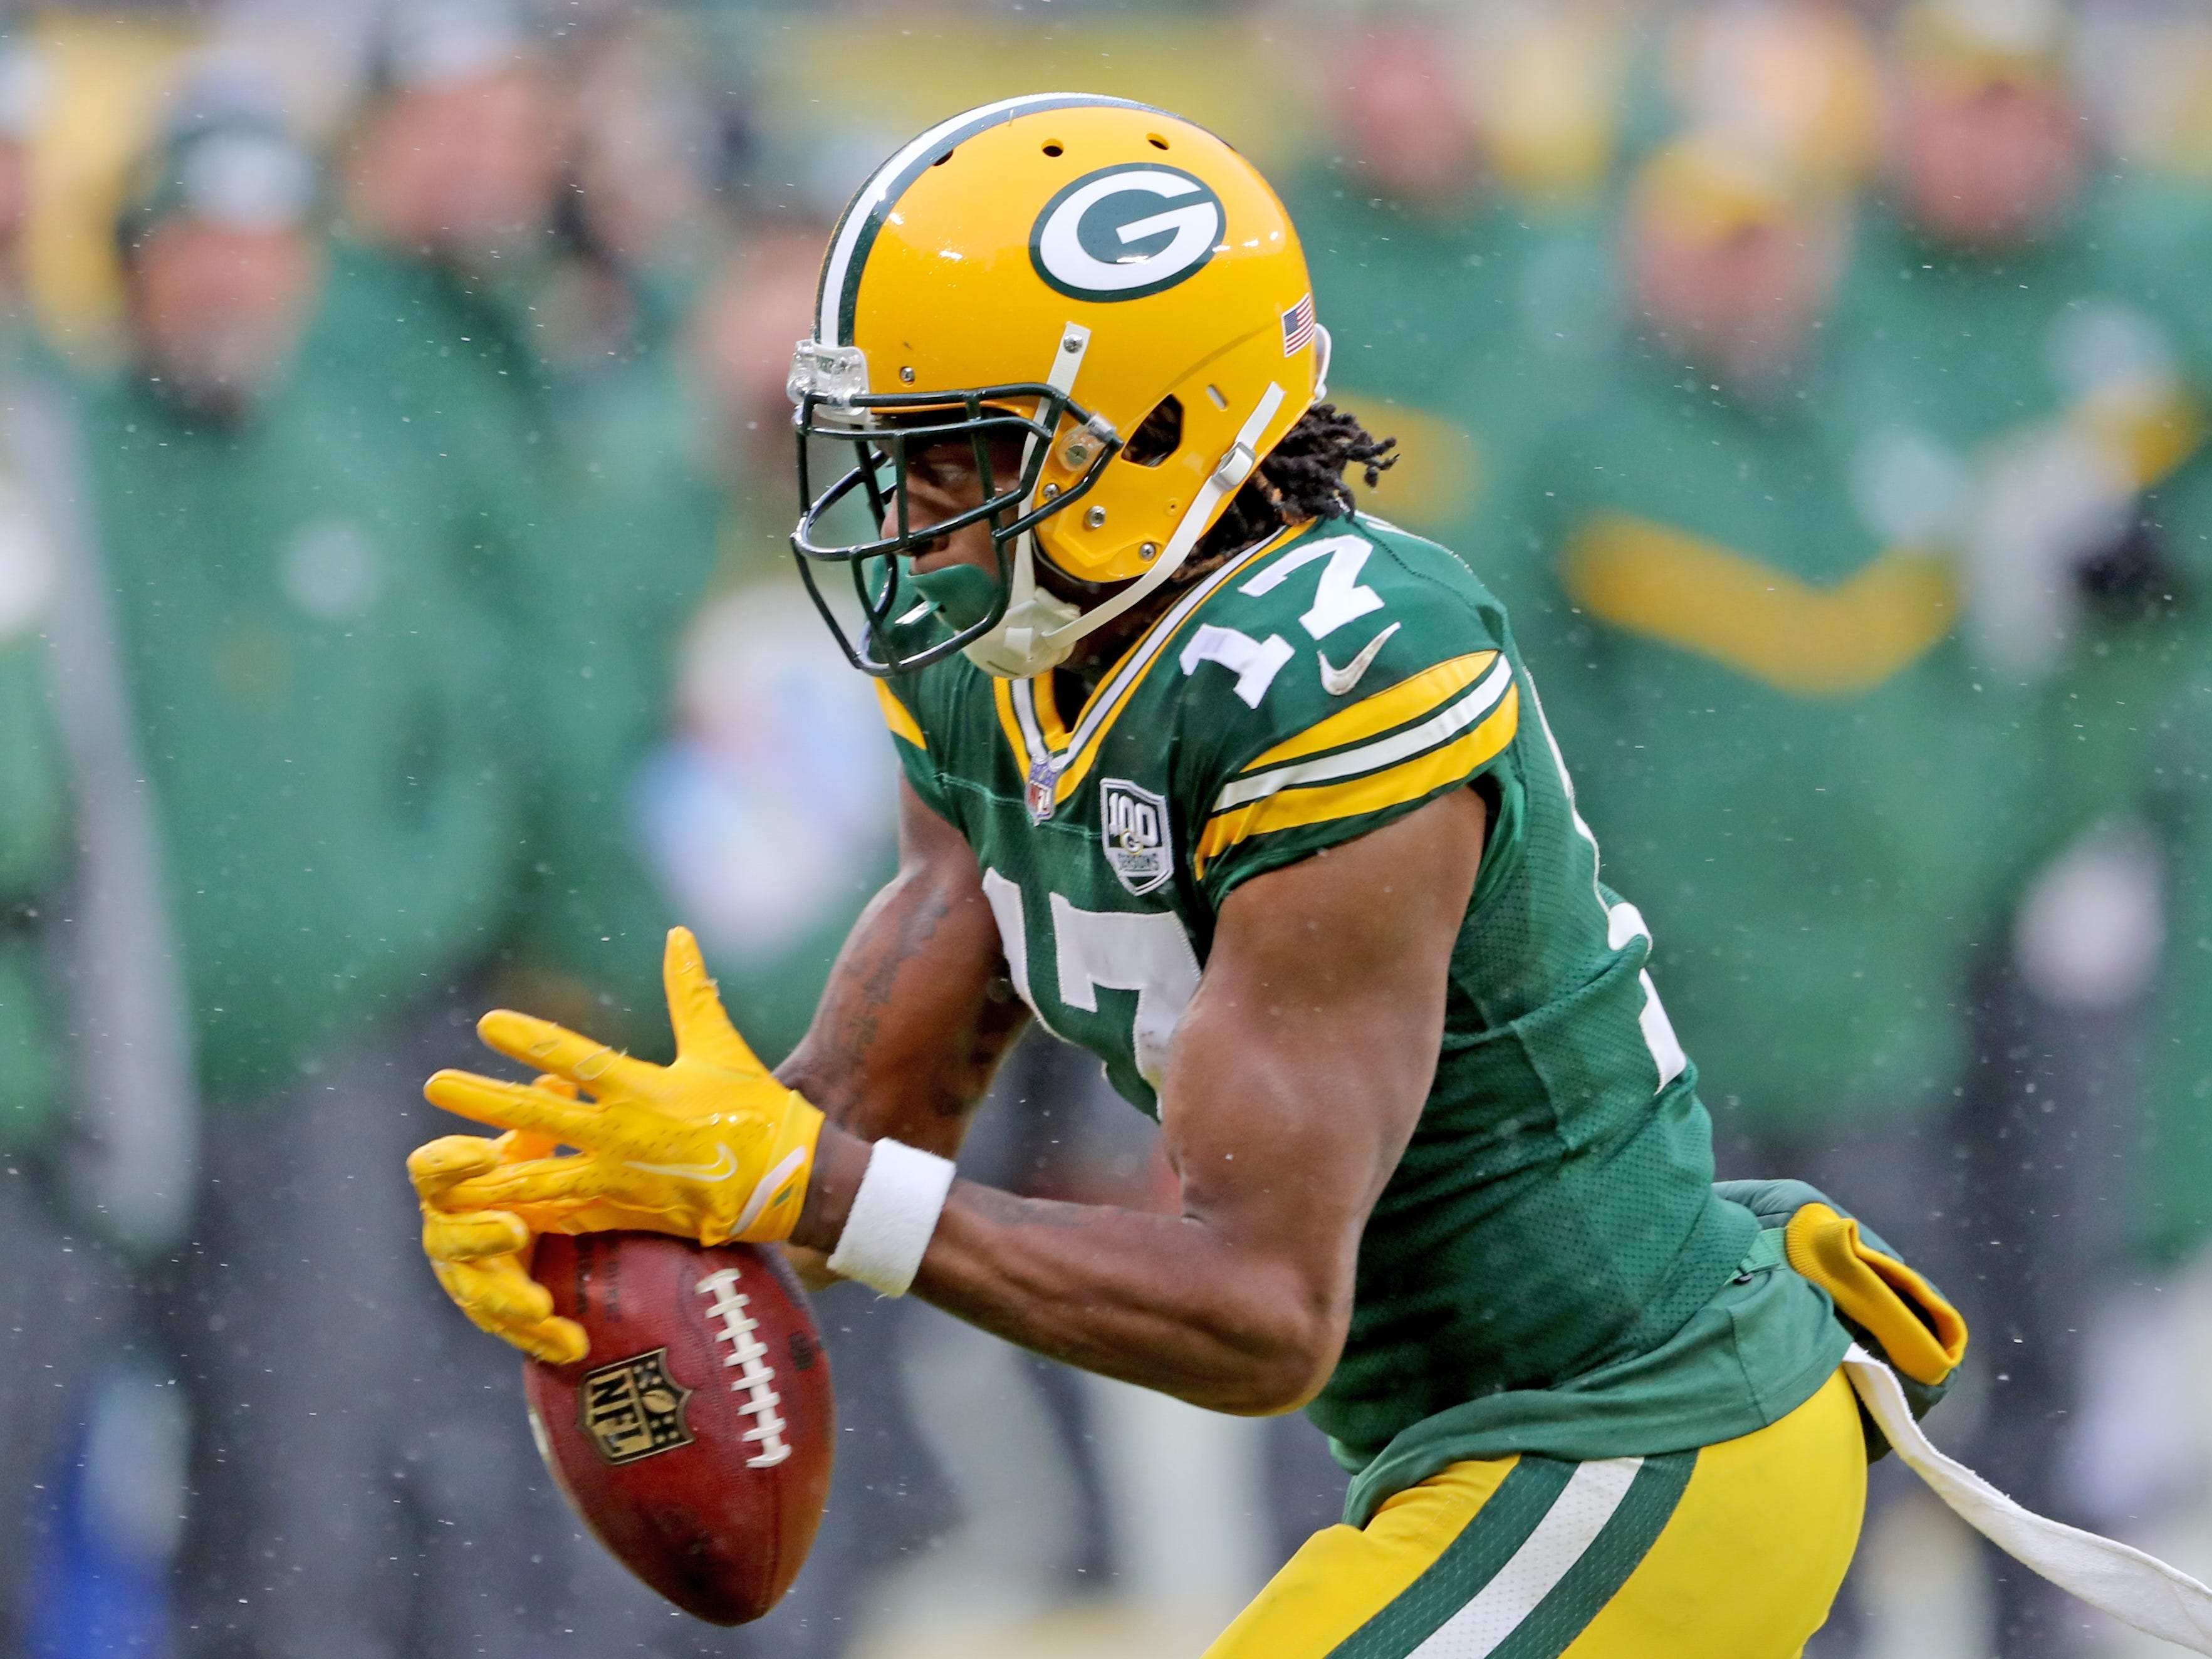 Green Bay Packers wide receiver Davante Adams (17) drops a pass against the Arizona Cardinals Sunday, December 2, 2018 at Lambeau Field in Green Bay, Wis. Jim Matthews/USA TODAY NETWORK-Wis